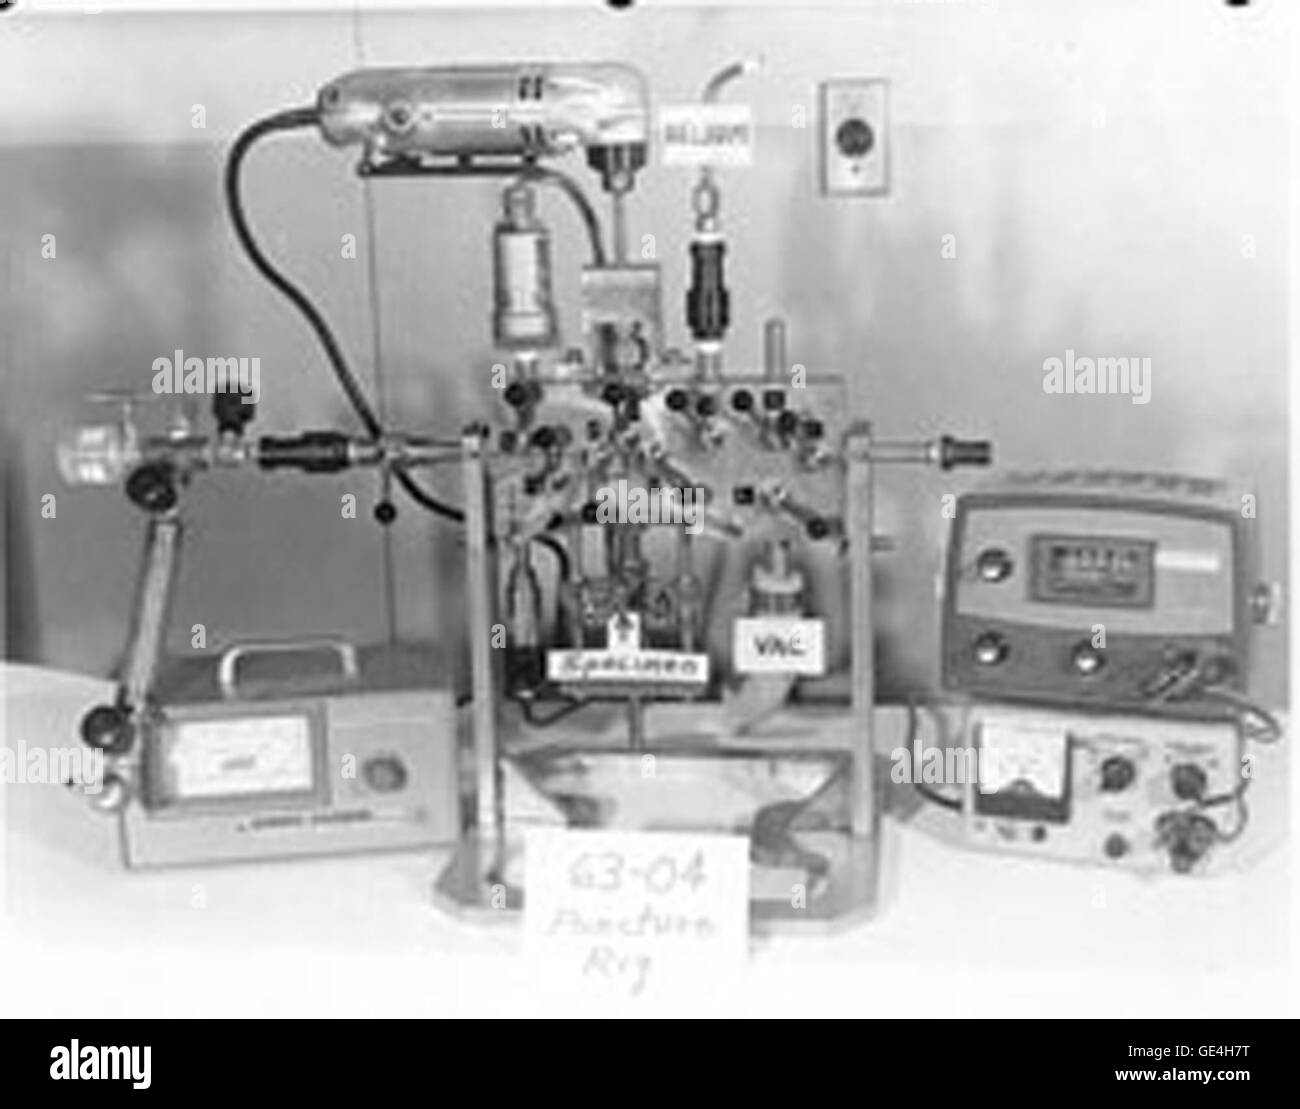 Puncture rig. Puncture rigs were used to penetrate the outer capsule of each experiment and measure the pressure - Stock Image